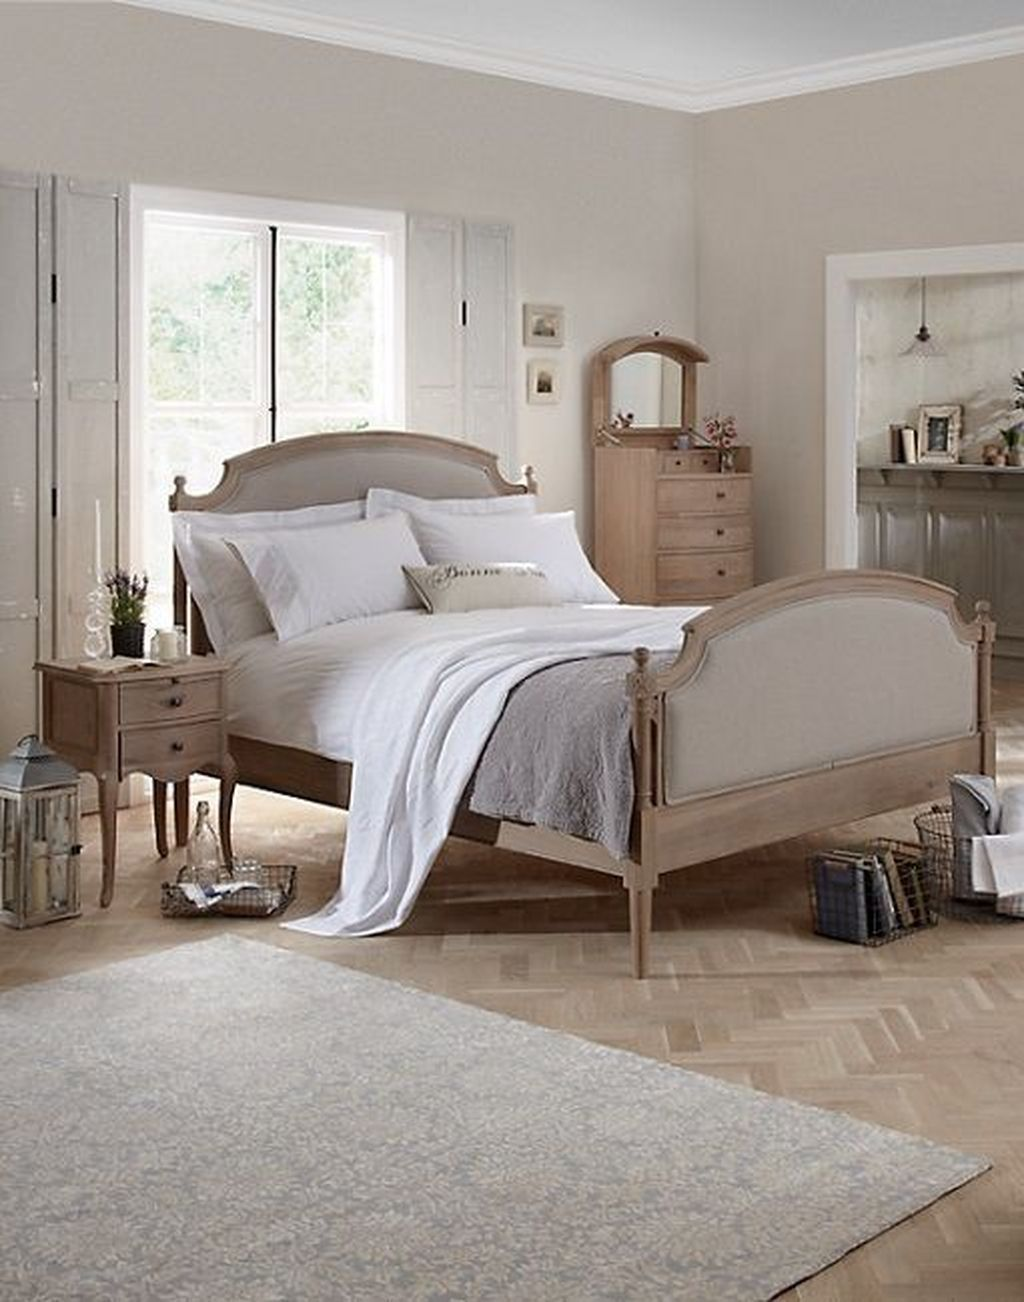 4 Awesome French Style Bedroom Decor Ideas To Try Asap in 4